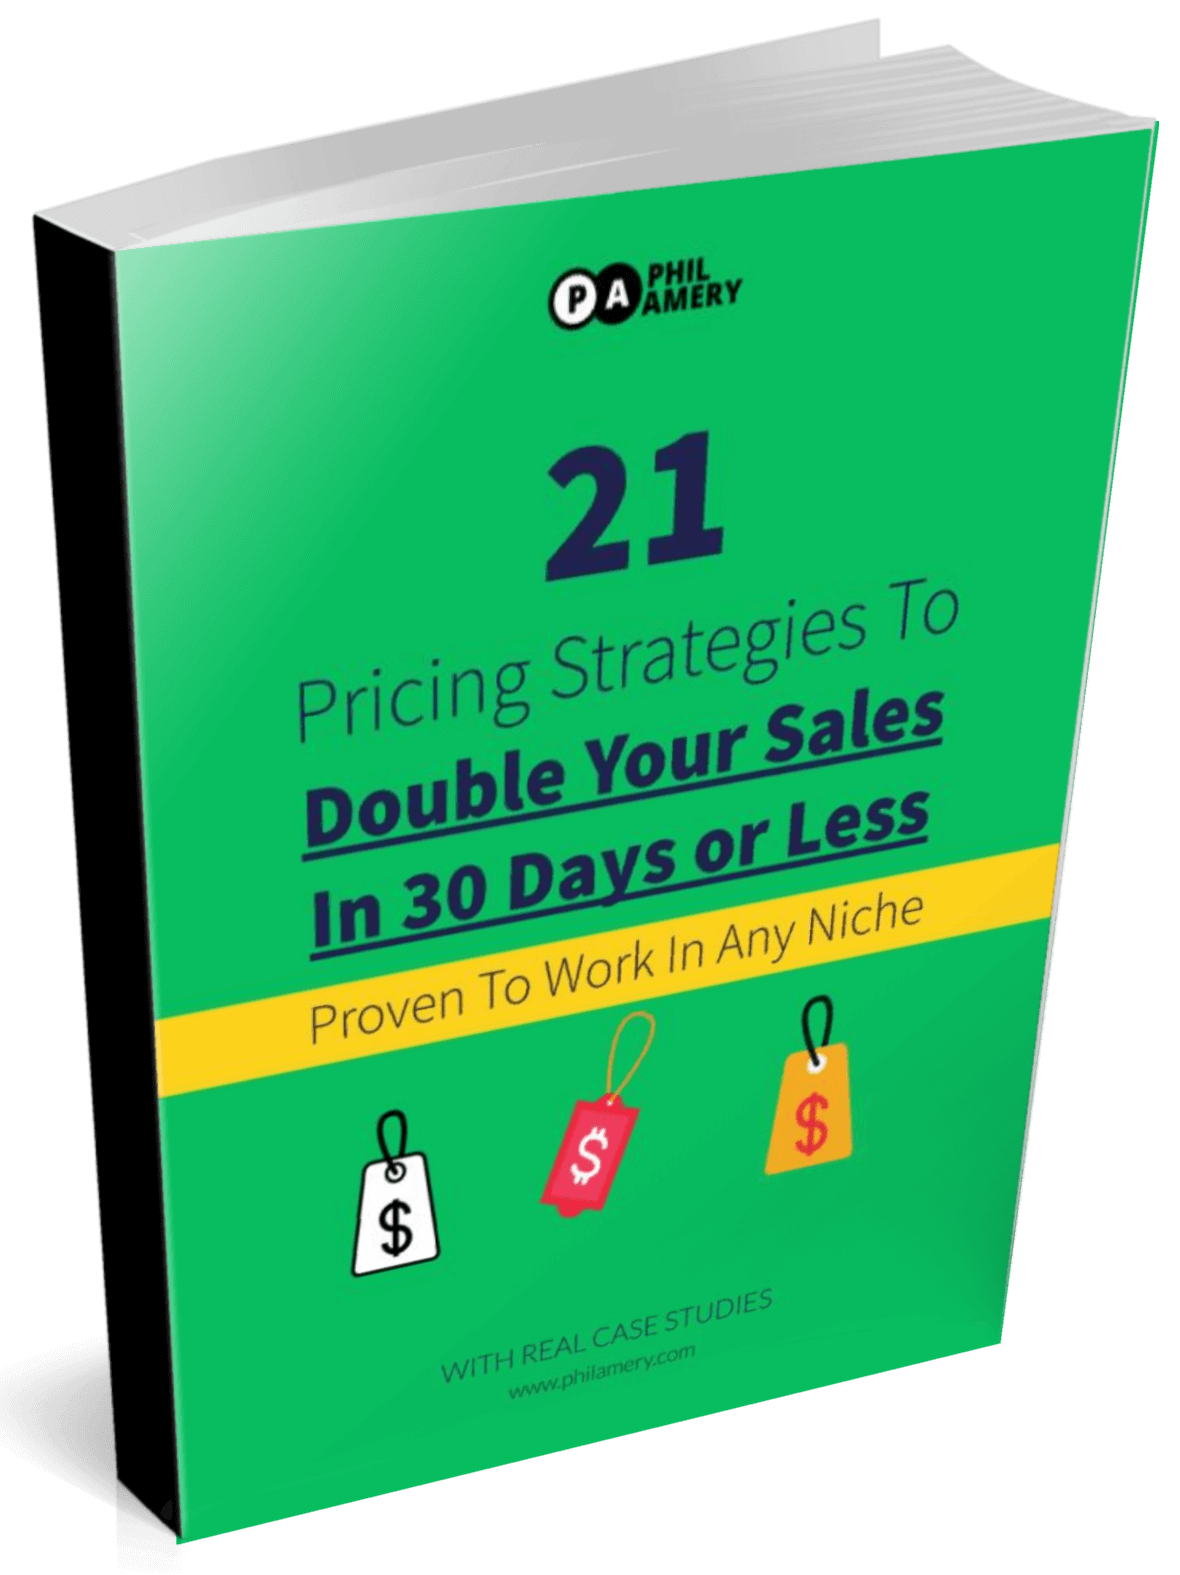 Pricing Strategies To Double Your Sales In 30 Days or Less